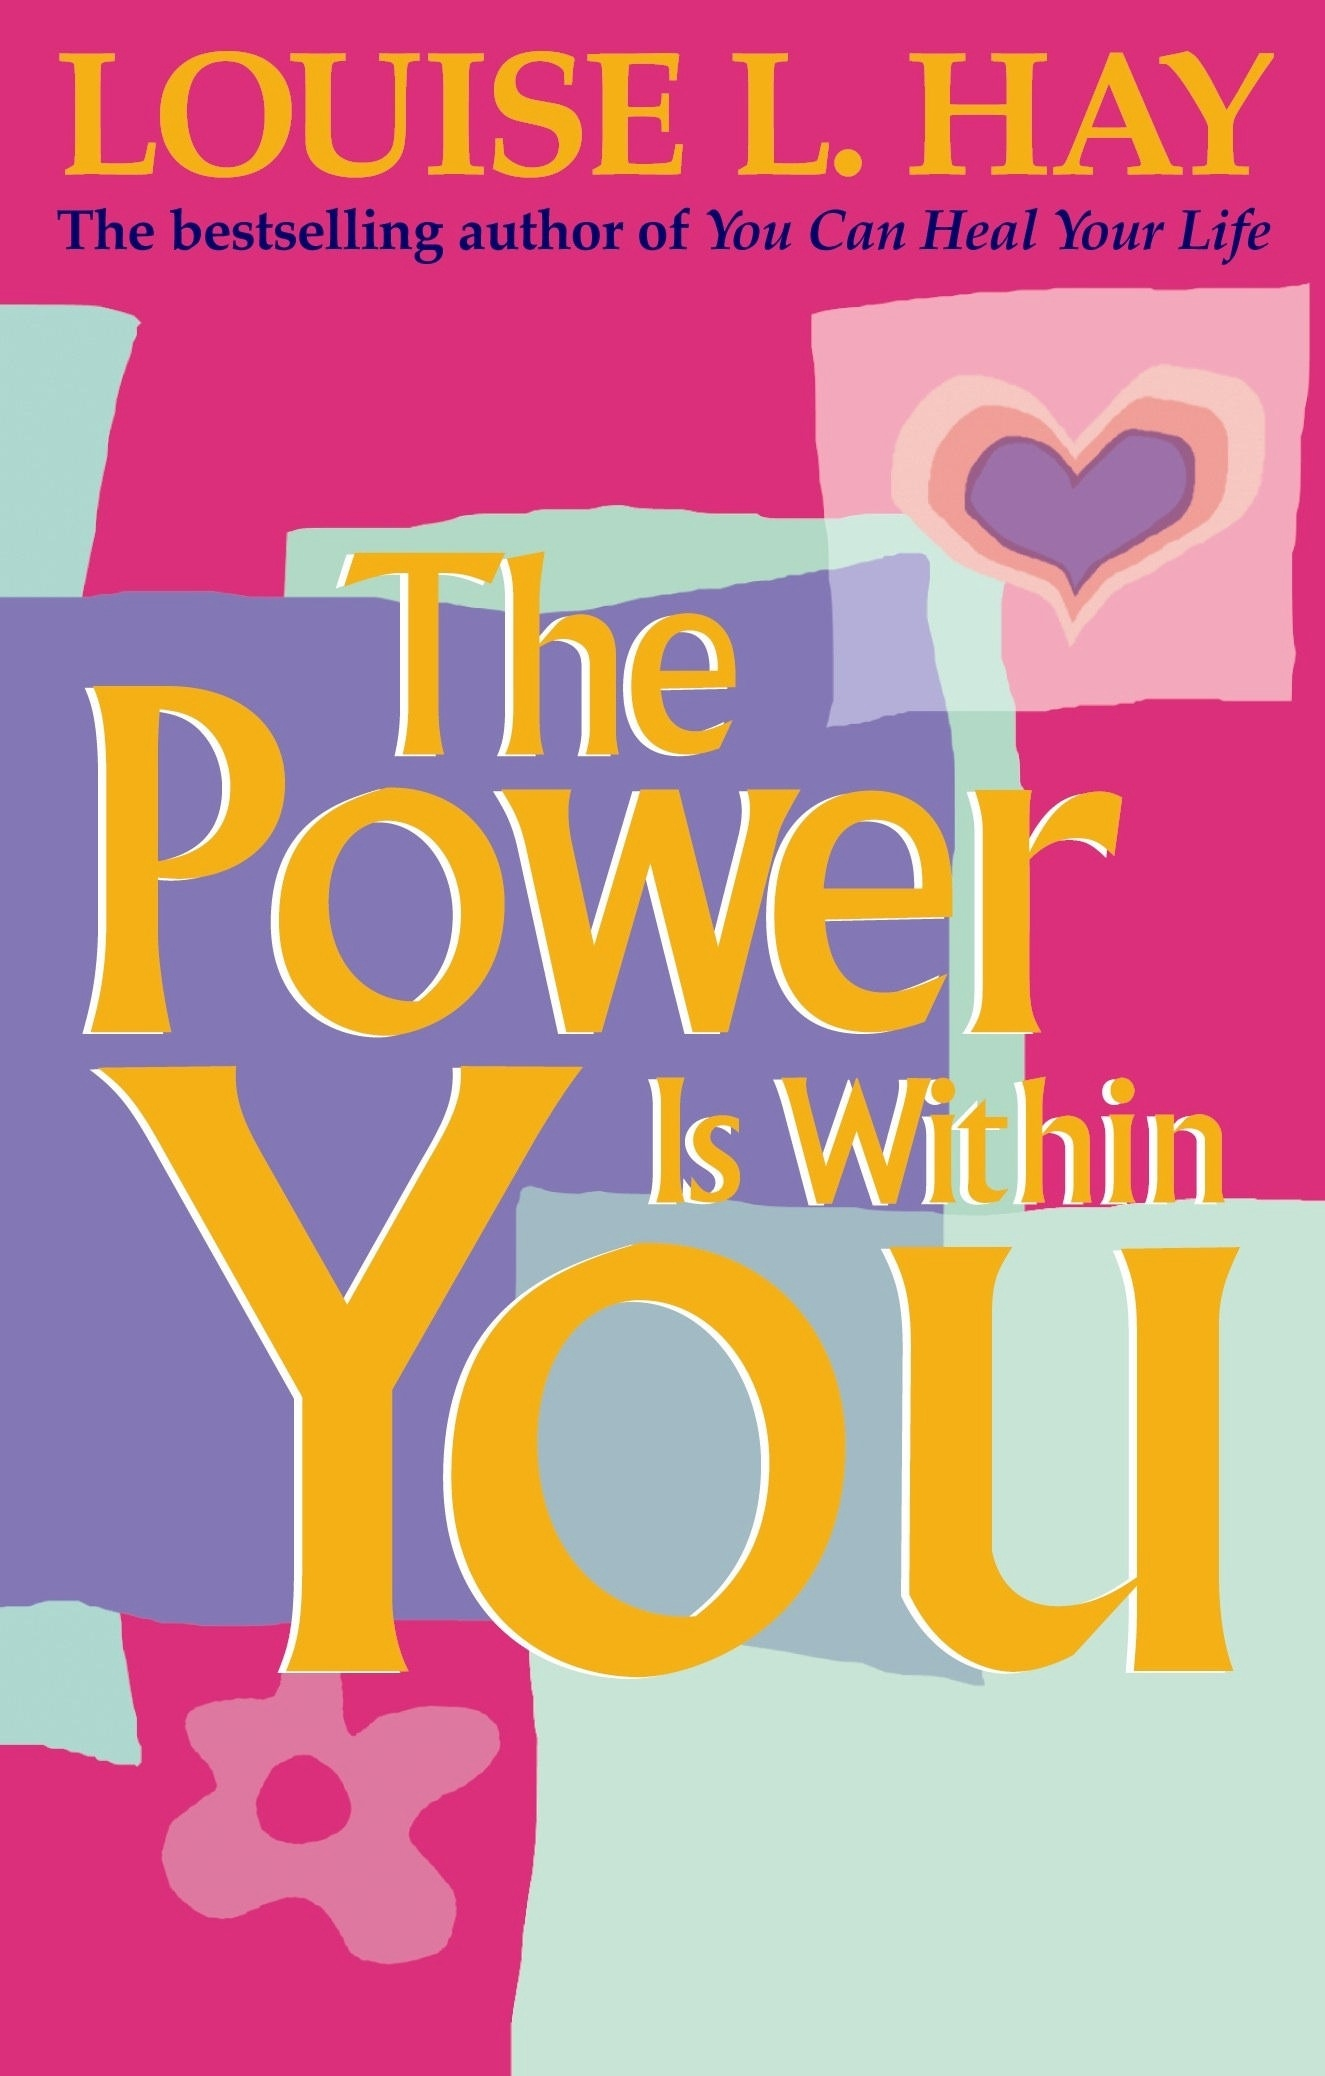 Libro: louise hay the power is within you